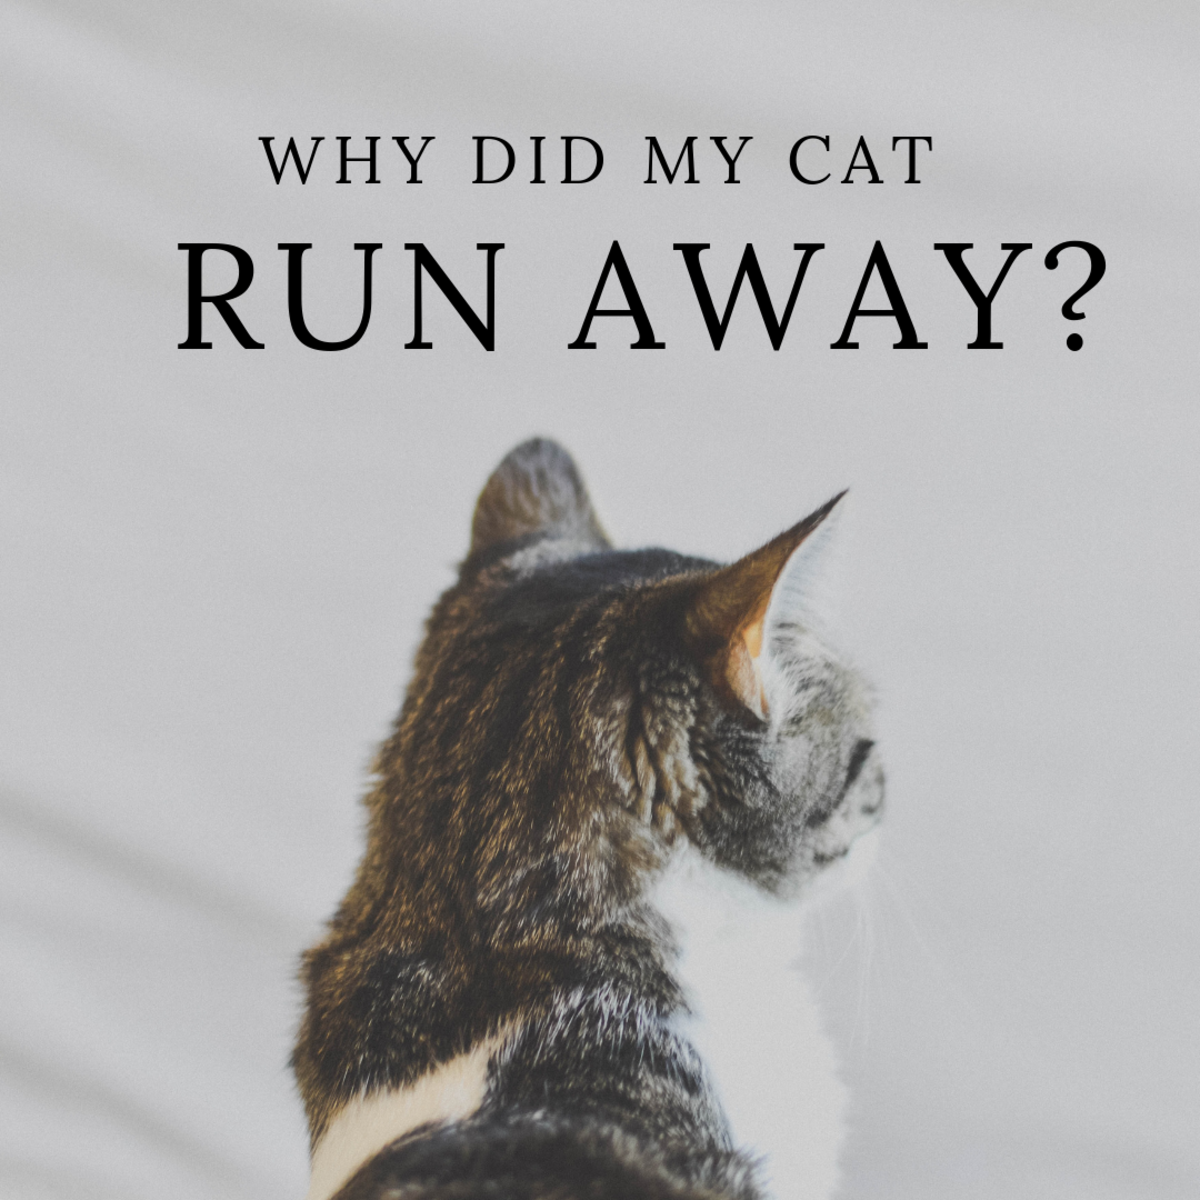 Is your cat missing?